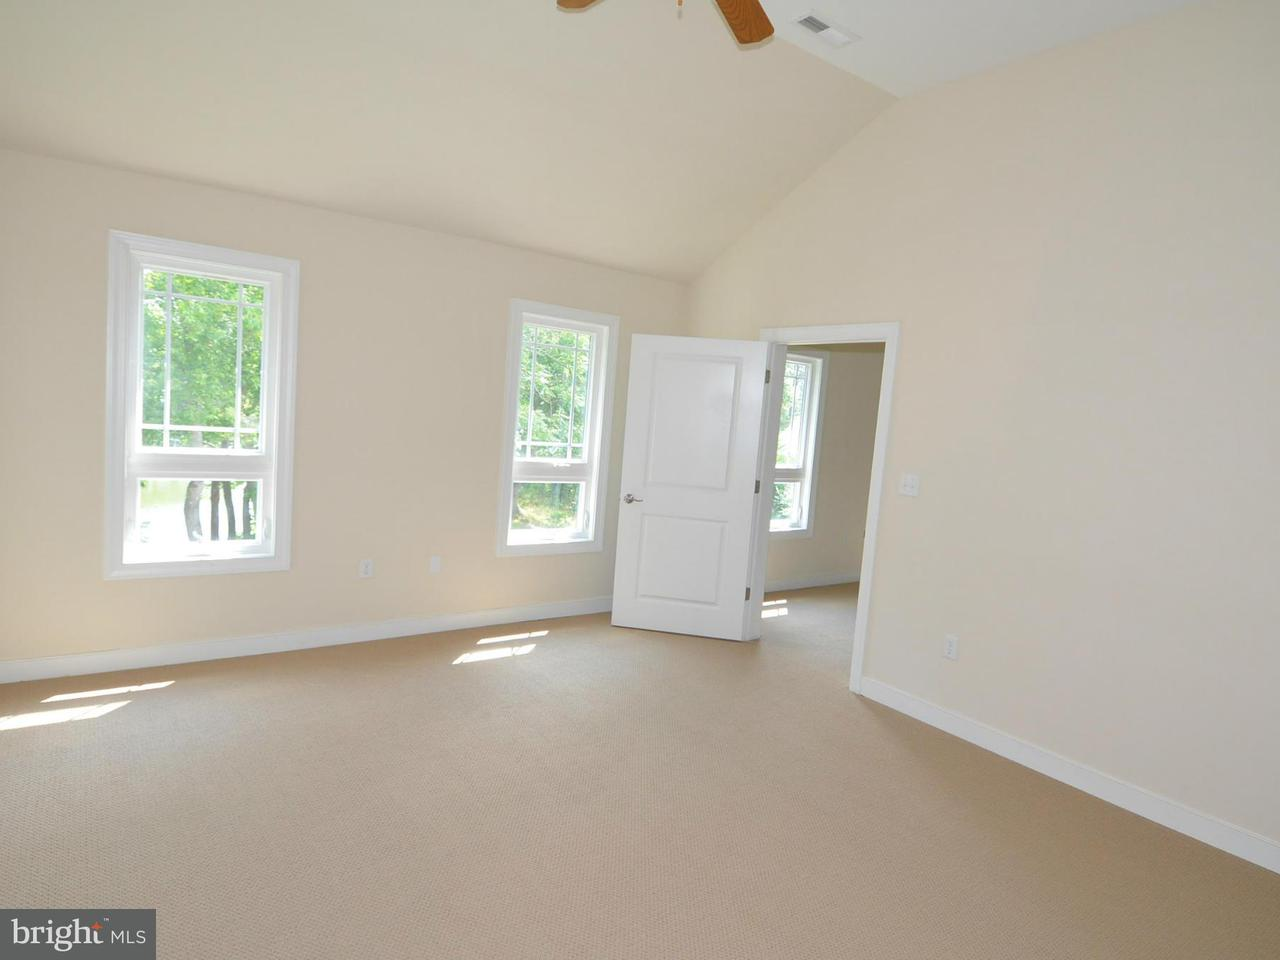 Additional photo for property listing at 239 Eagles Nest Lane 239 Eagles Nest Lane Heathsville, Virginia 22473 États-Unis